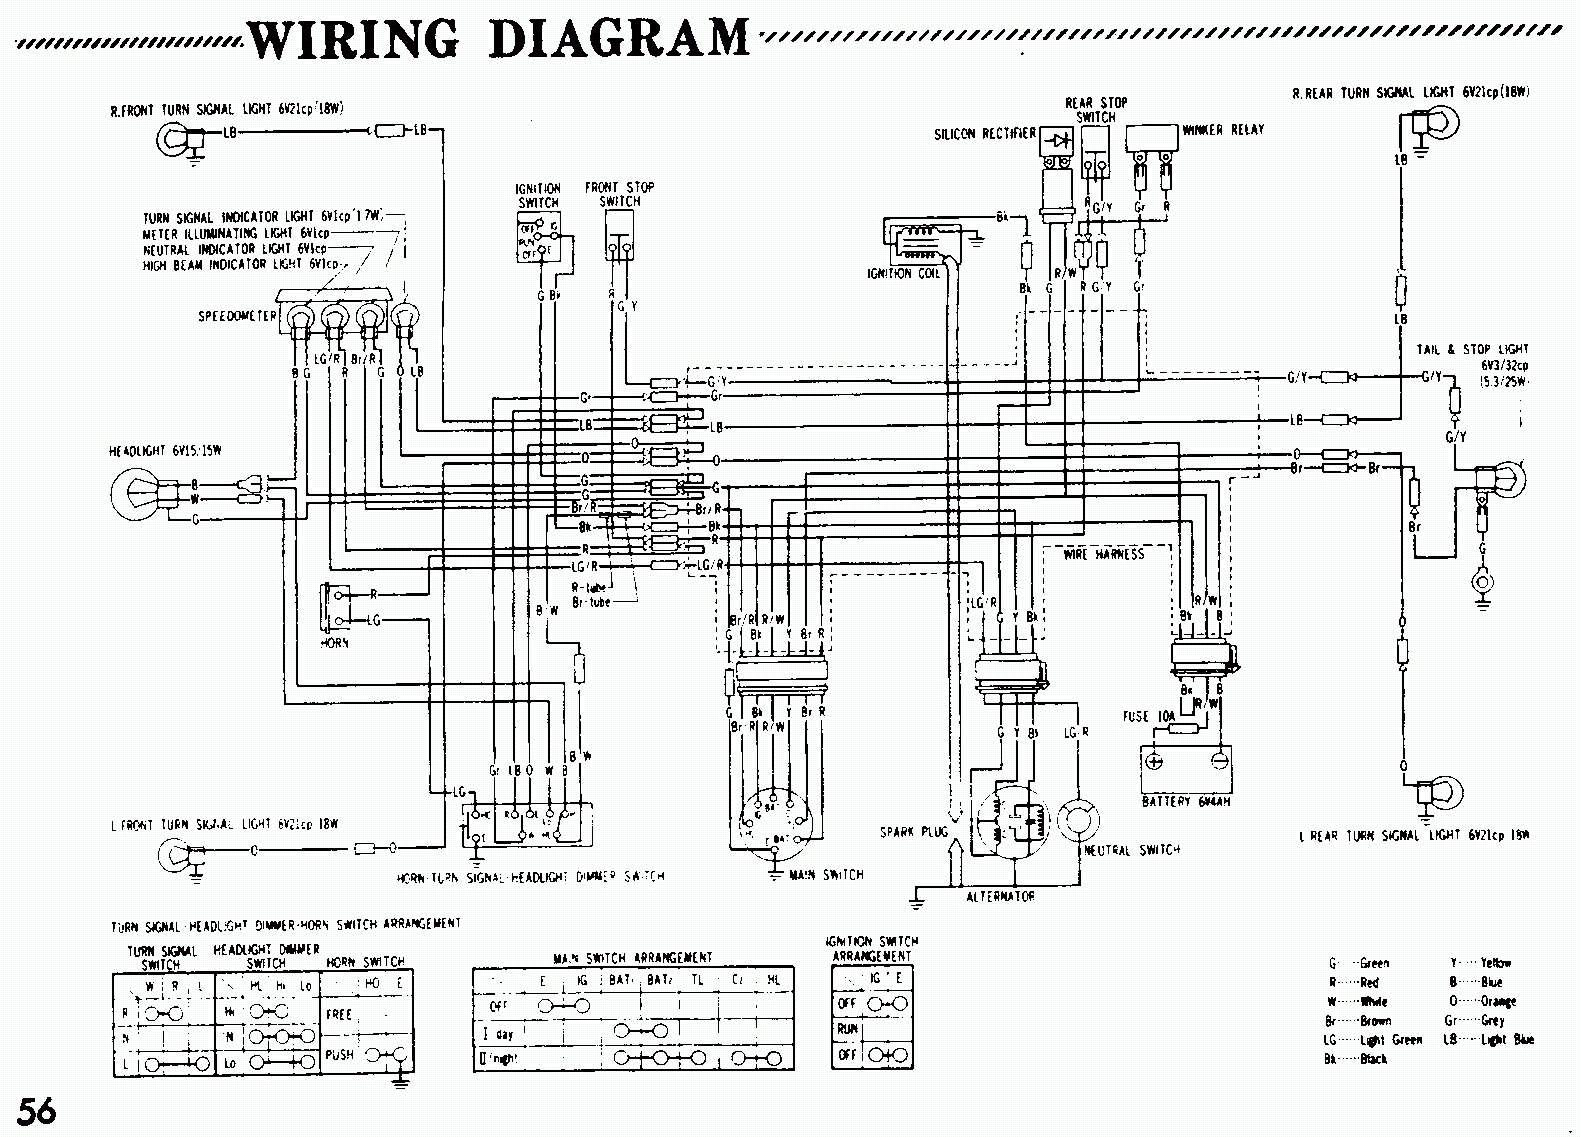 Usa Wire Diagram Schematics Data 1982 Chevy Truck Courtesy Light Wiring Tbolt Tech Database Llc For A 1931 Ford Coupe